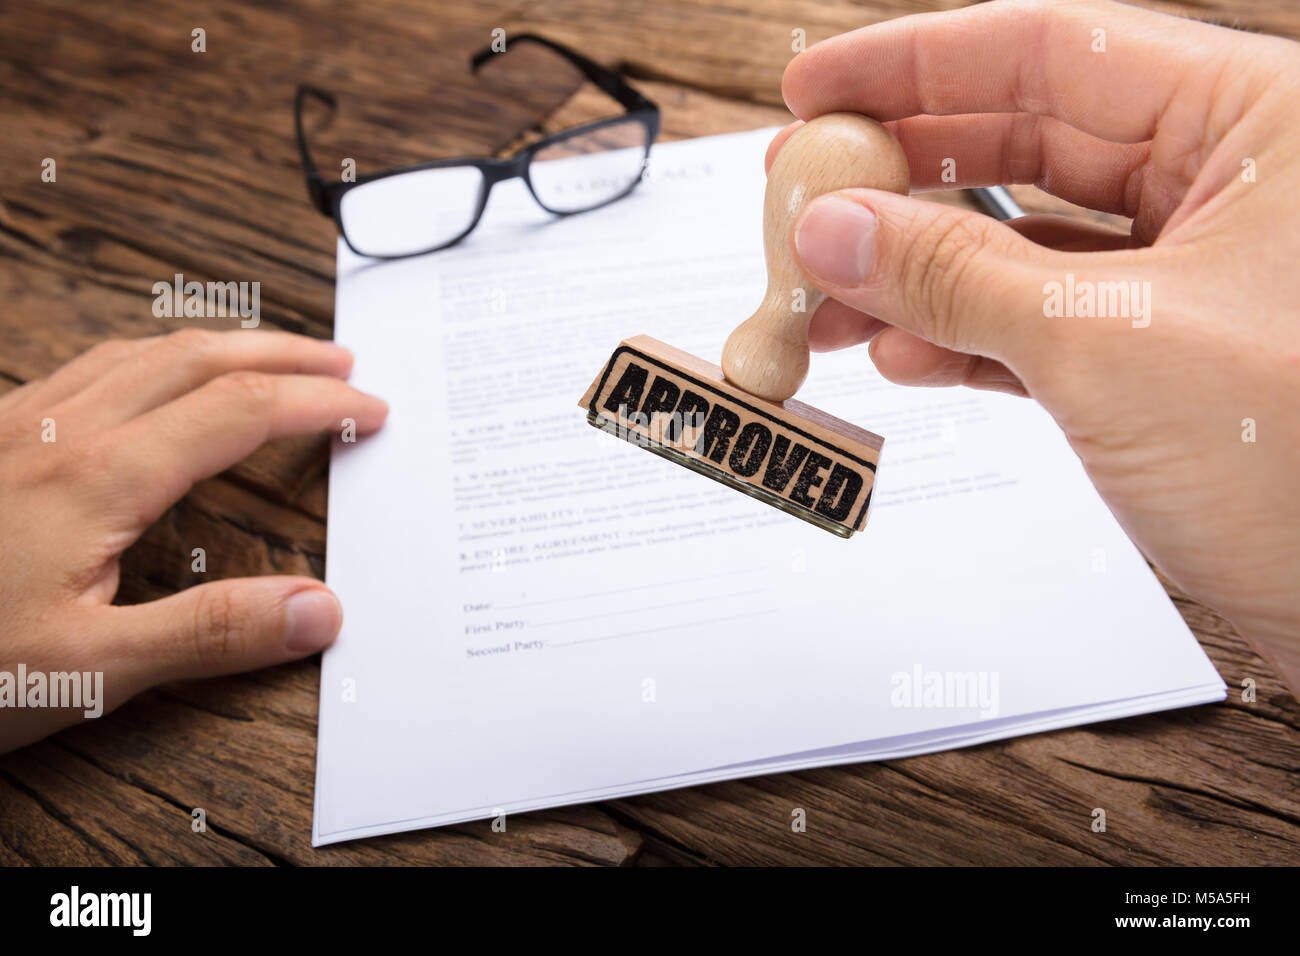 Cropped hands of businessman holding approved stamp over contract paper at wooden table Stock Photo